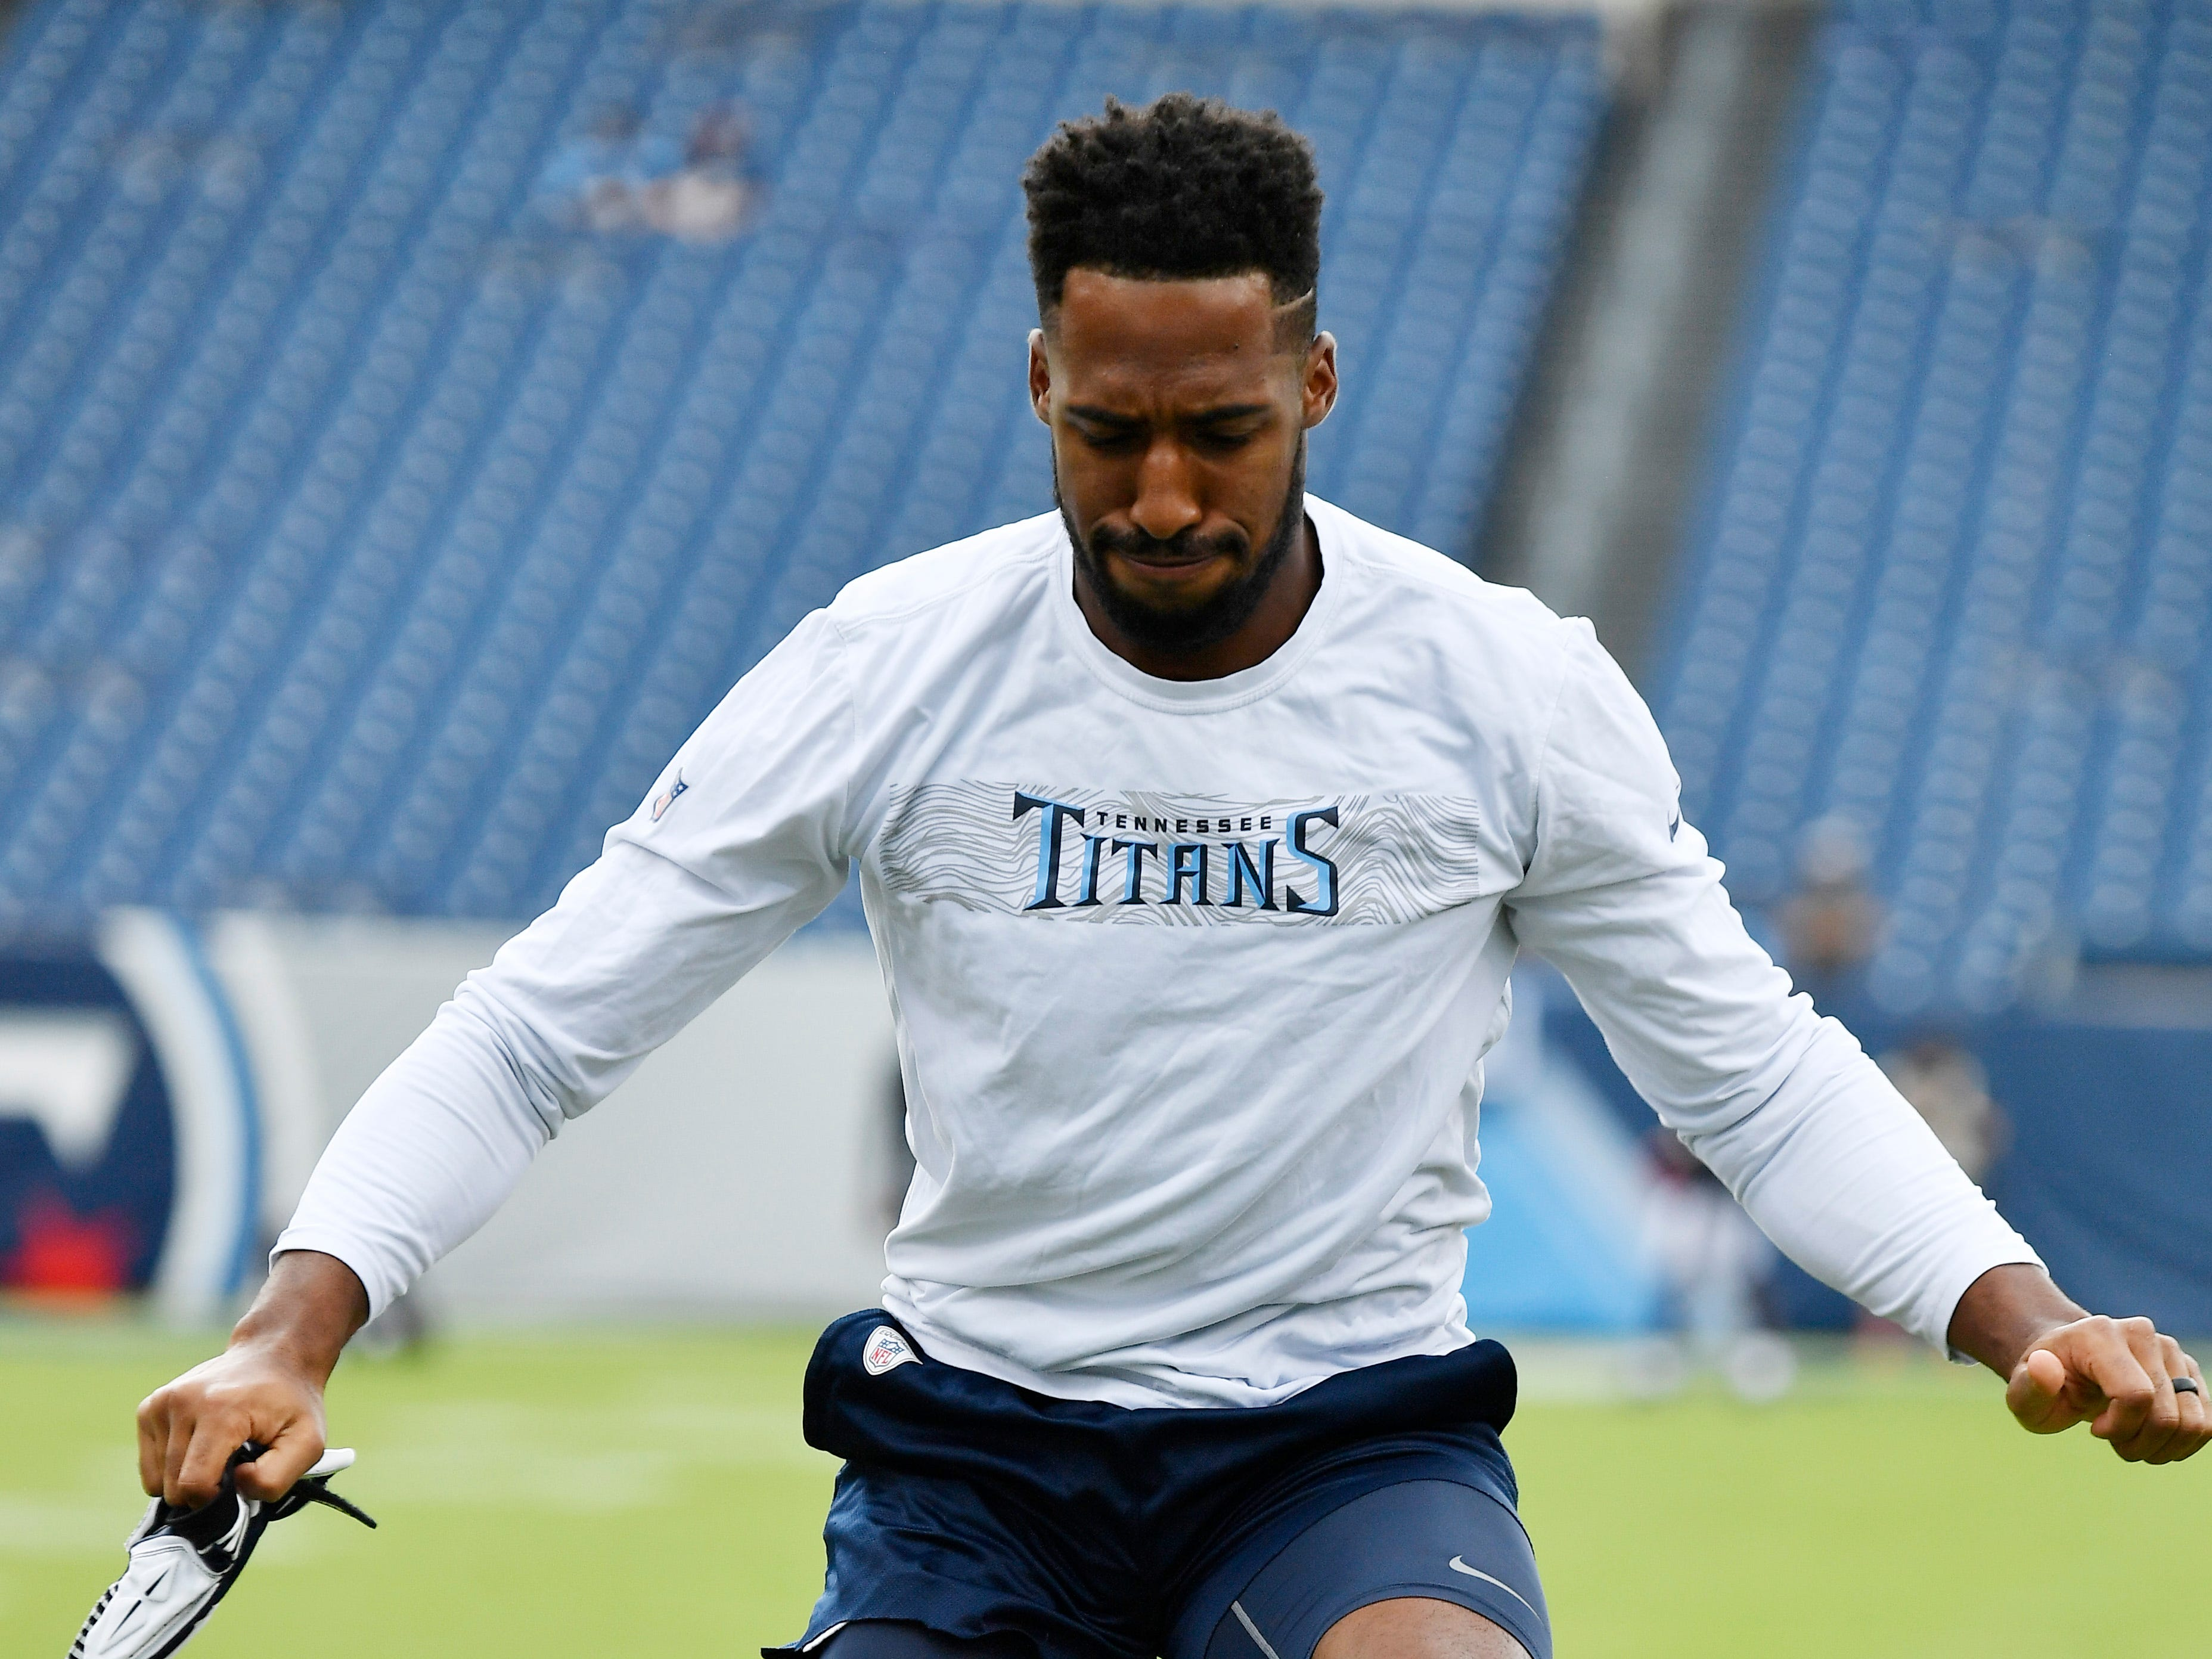 Titans cornerback Logan Ryan (26) warms up before the game against the Texans at Nissan Stadium Sunday, Sept. 16, 2018, in Nashville, Tenn.